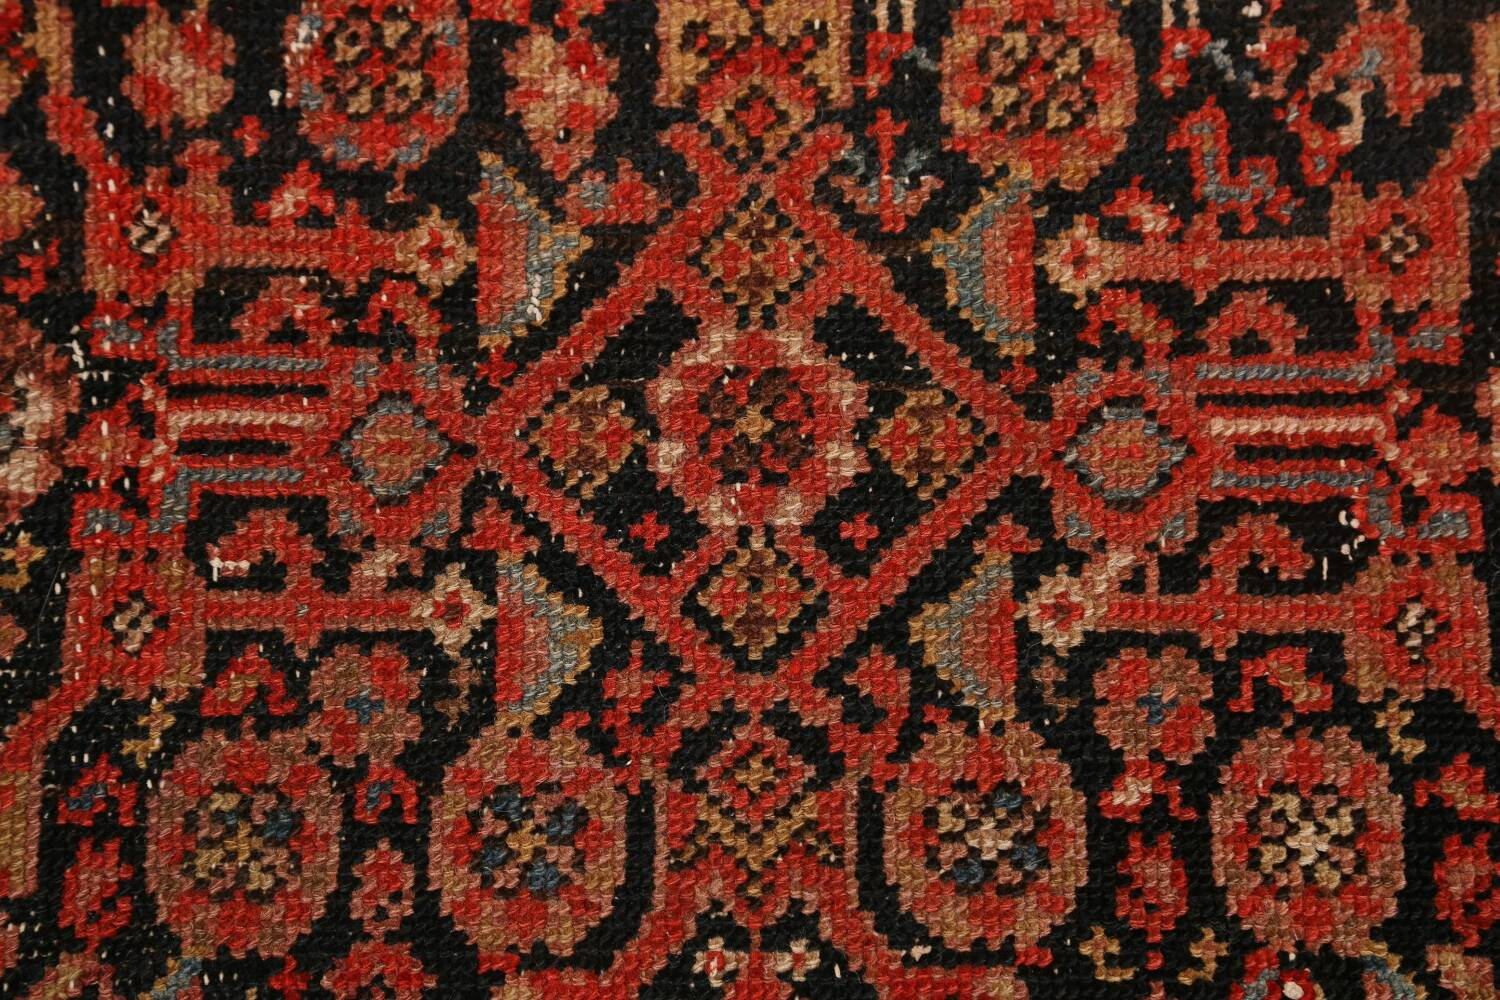 Pre-1900 Antique Malayer Vegetable Dye Persian Area Rug 5x7 image 9